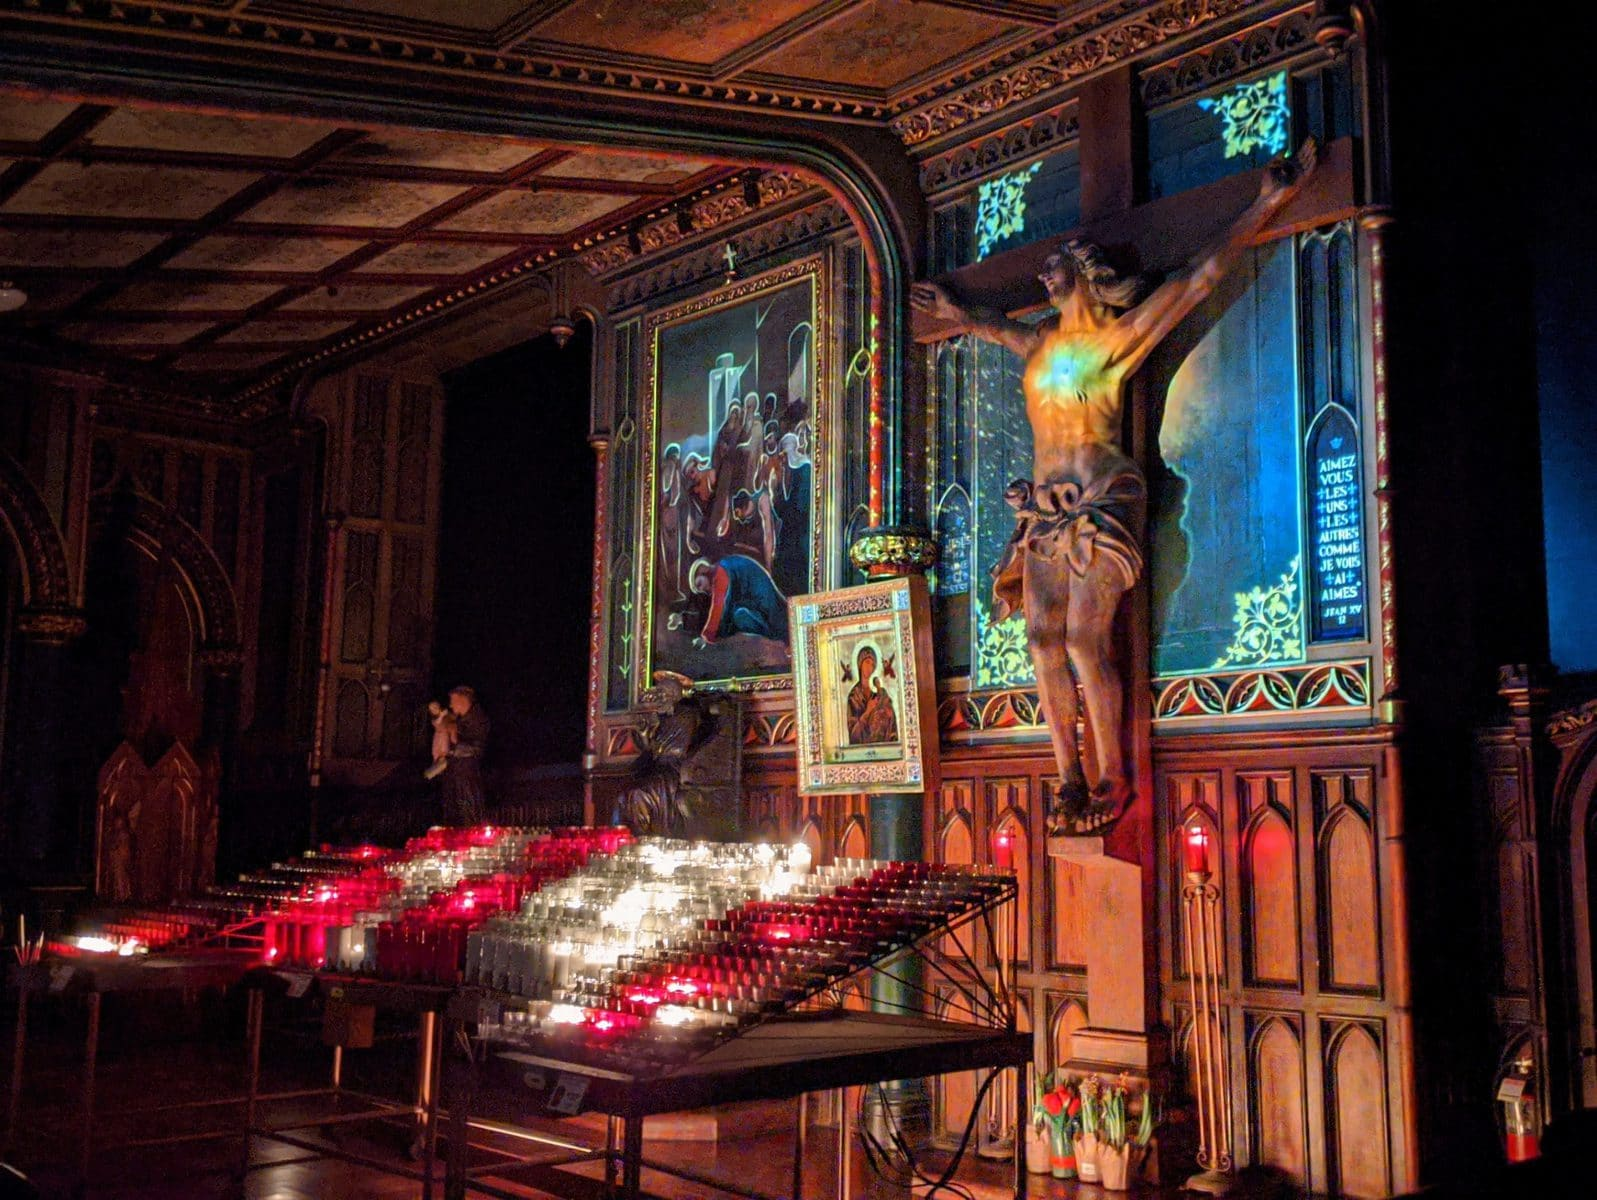 Illuminated sculpture of Jesus on the cross at Aura Montreal at the Notre-Dame Basilica